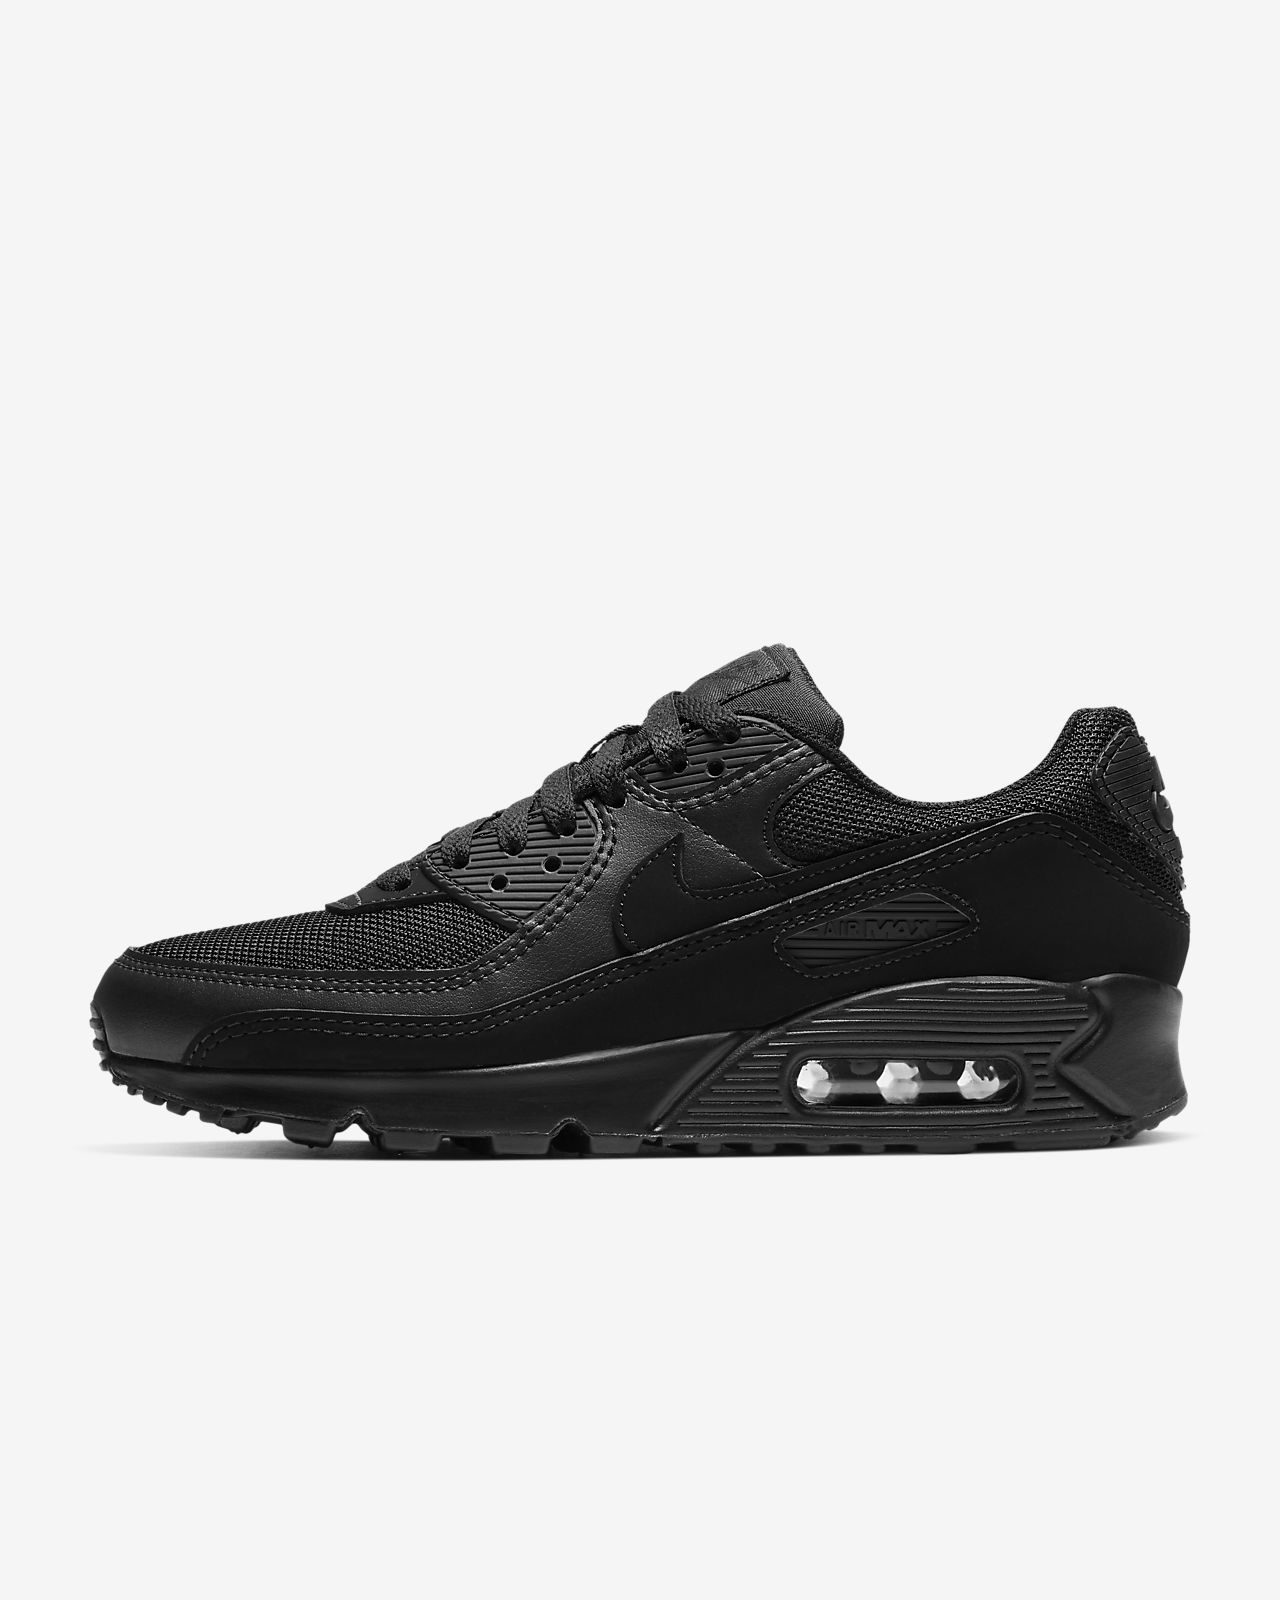 Nike Air Max 90 Damenschuh